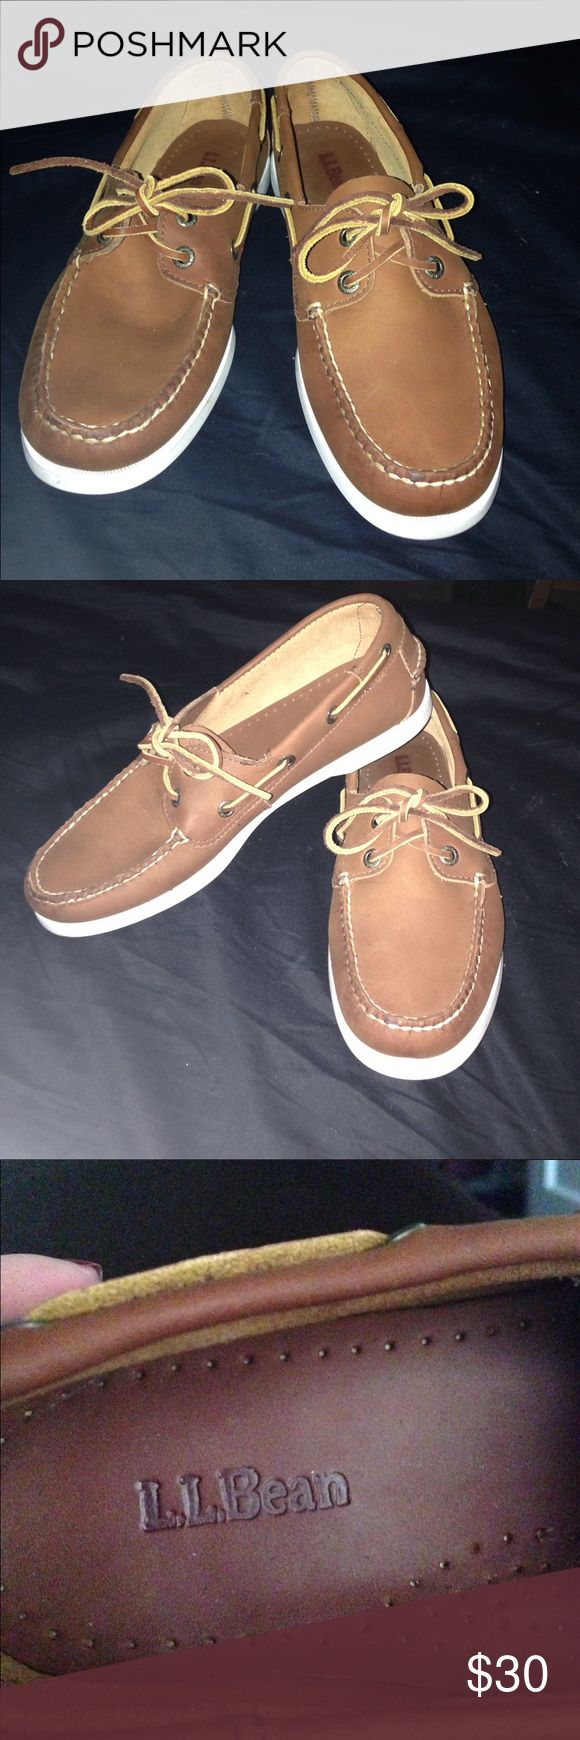 NWOT* Men's LL Bean shoes Handsome shoes.. Genuine boat shoe. Amazing condition, great brand! Hardly worn. Great purchase for this holiday season!!! L.L. Bean Shoes Boat Shoes